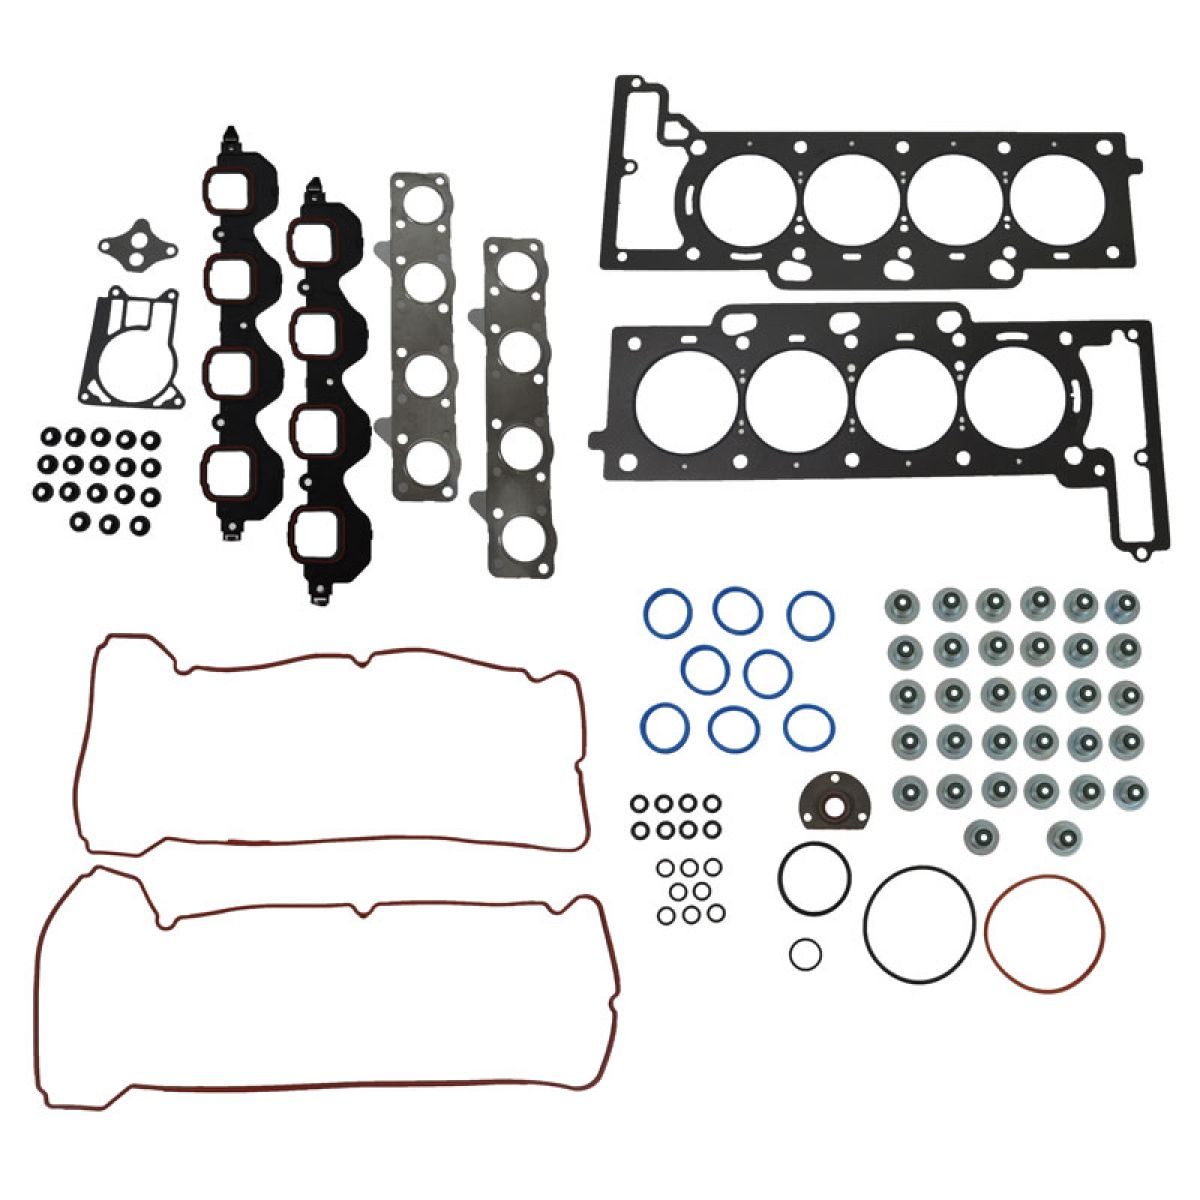 Engine Head Intake Exhaust Manifold Valve Cover Gasket Kit Set For Cadillac 4 6l